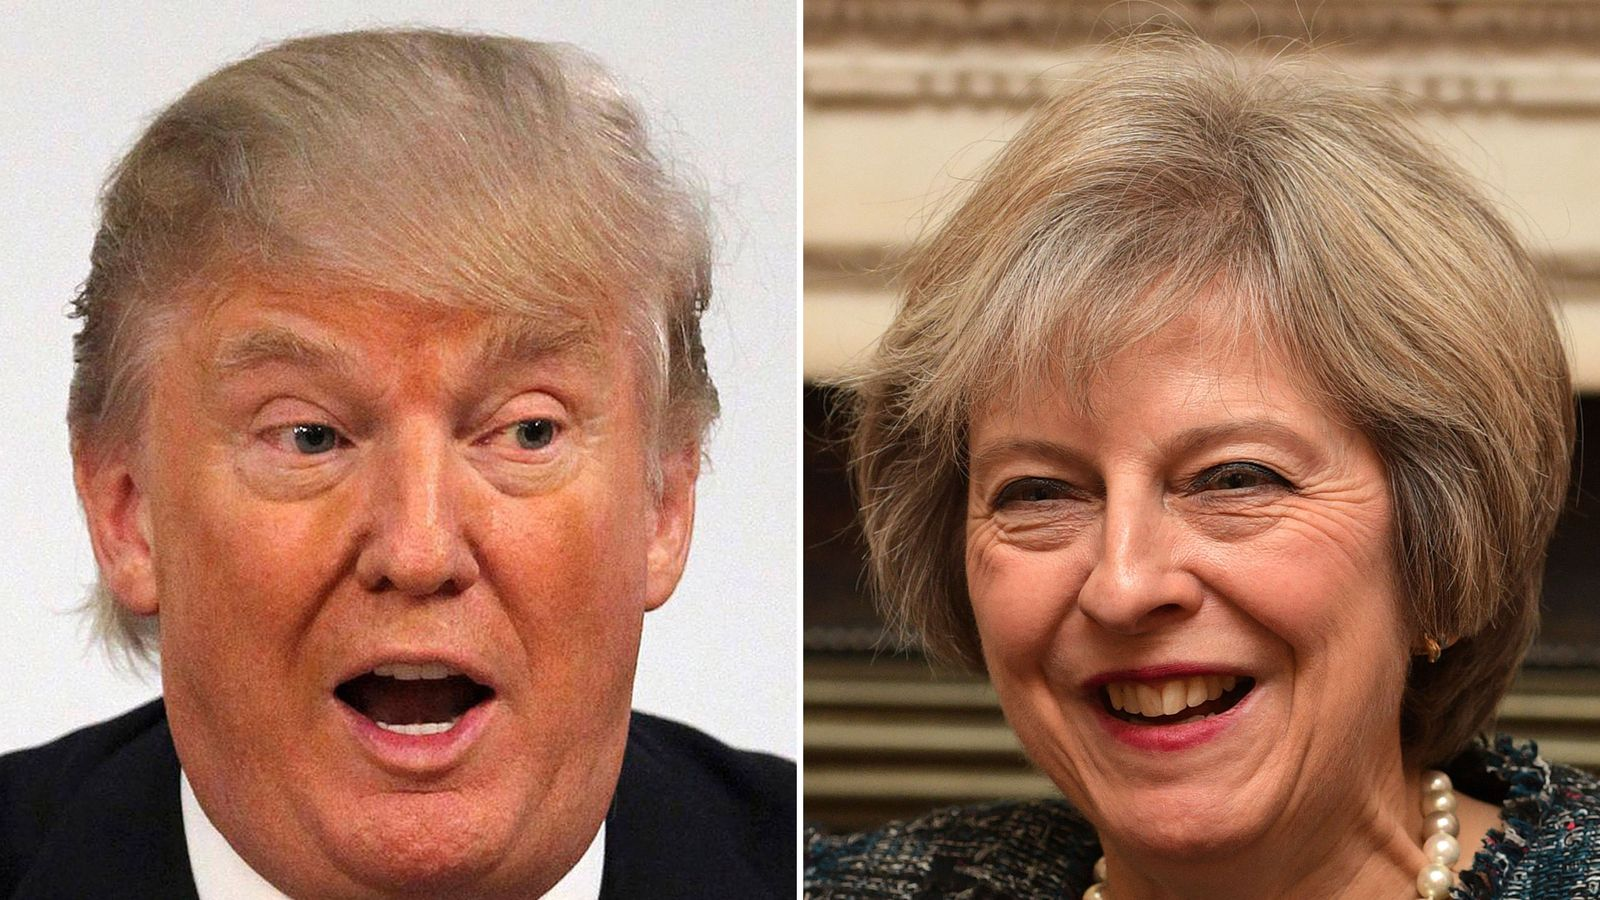 political differences of the us president and the british prime minister Theresa may struck a populist tone in her first public talk as british prime minister @theresa_may - despite our differences president reiterated.